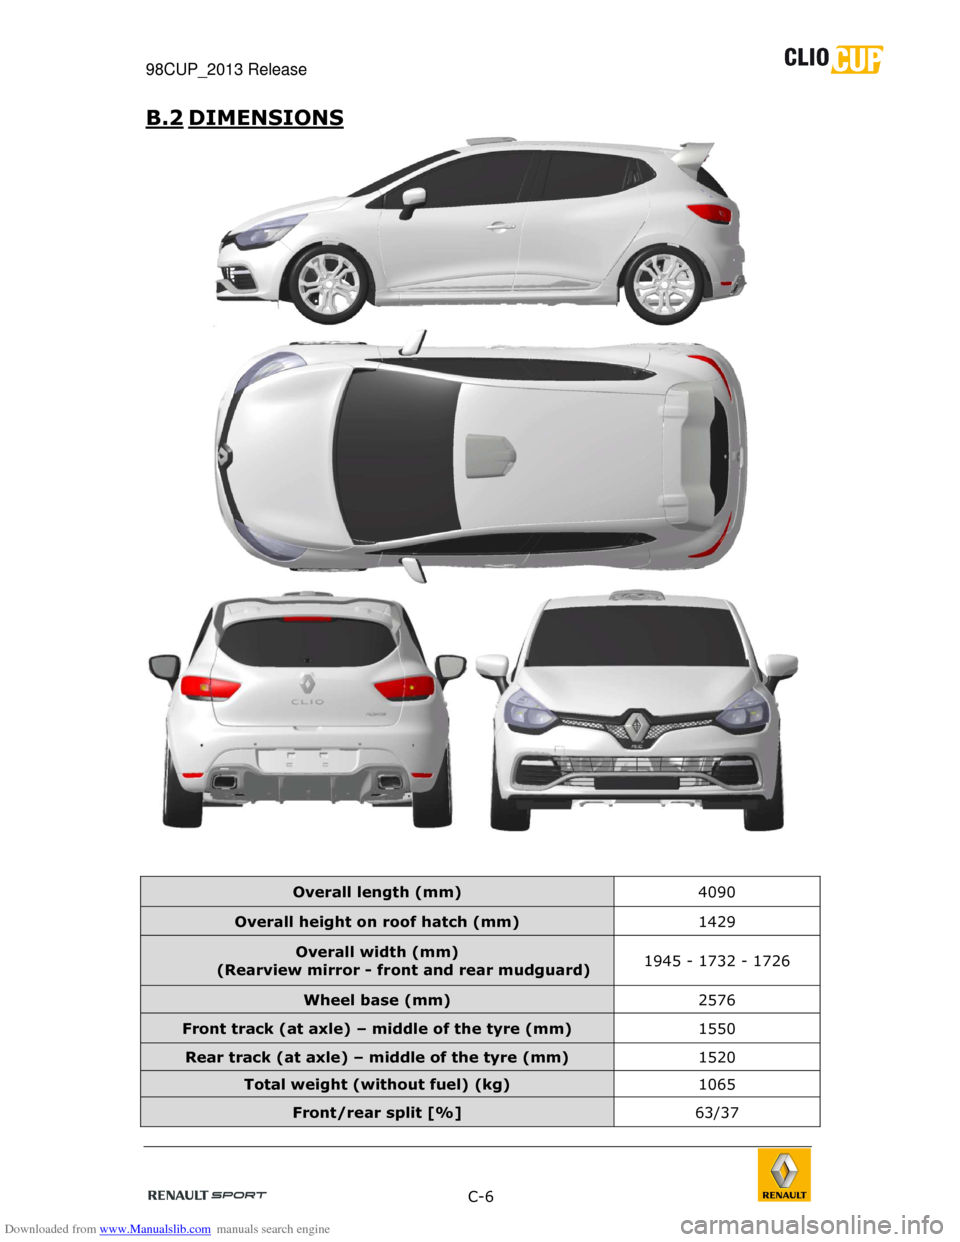 RENAULT CLIO CUP 2013 X85 / 3.G User Manual, Page 6